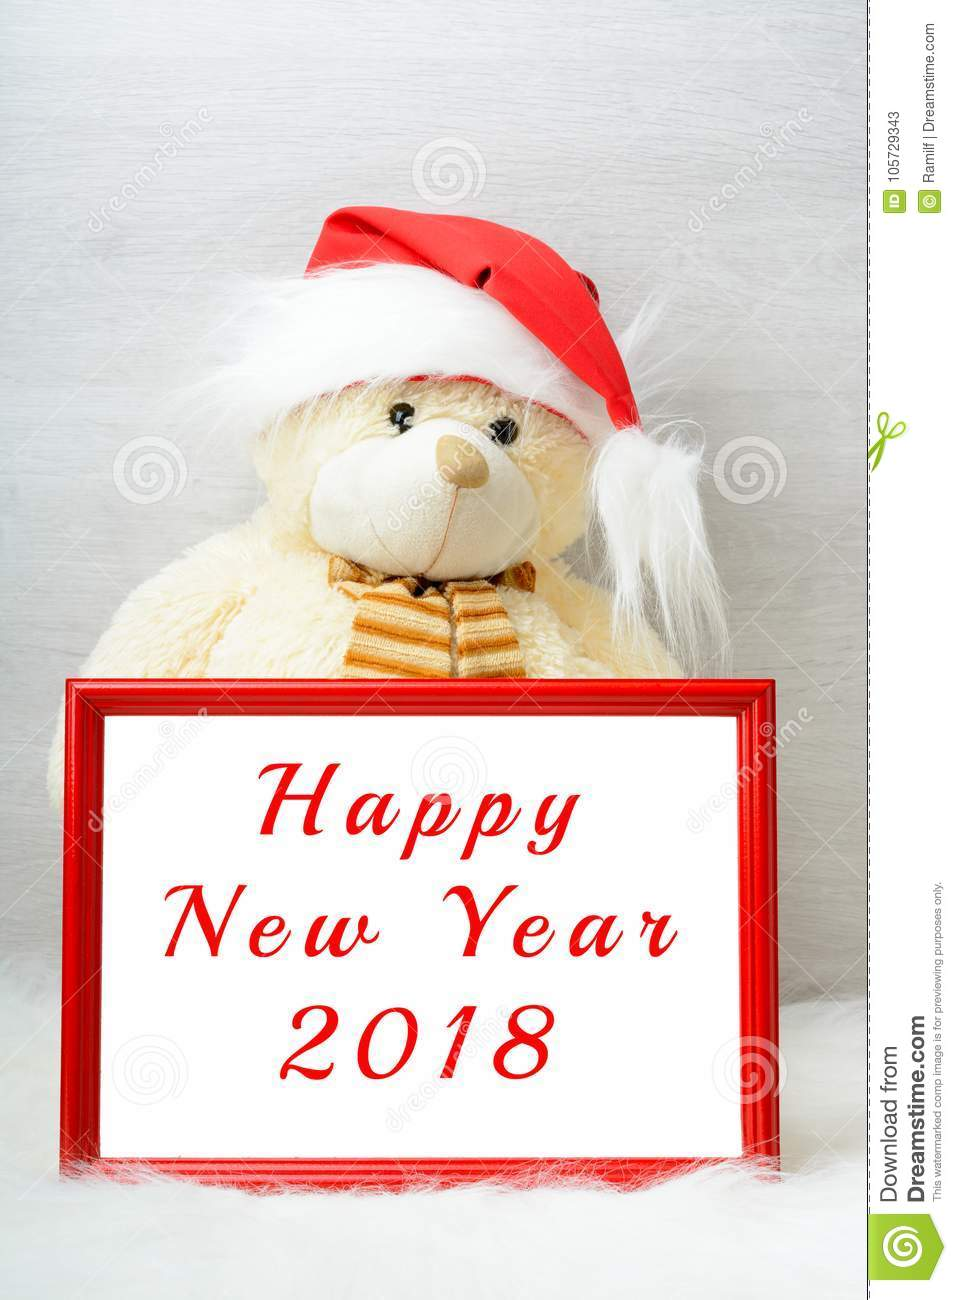 happy new year 2018 card with a cute teddy bear wearing a santa claus hat in snow